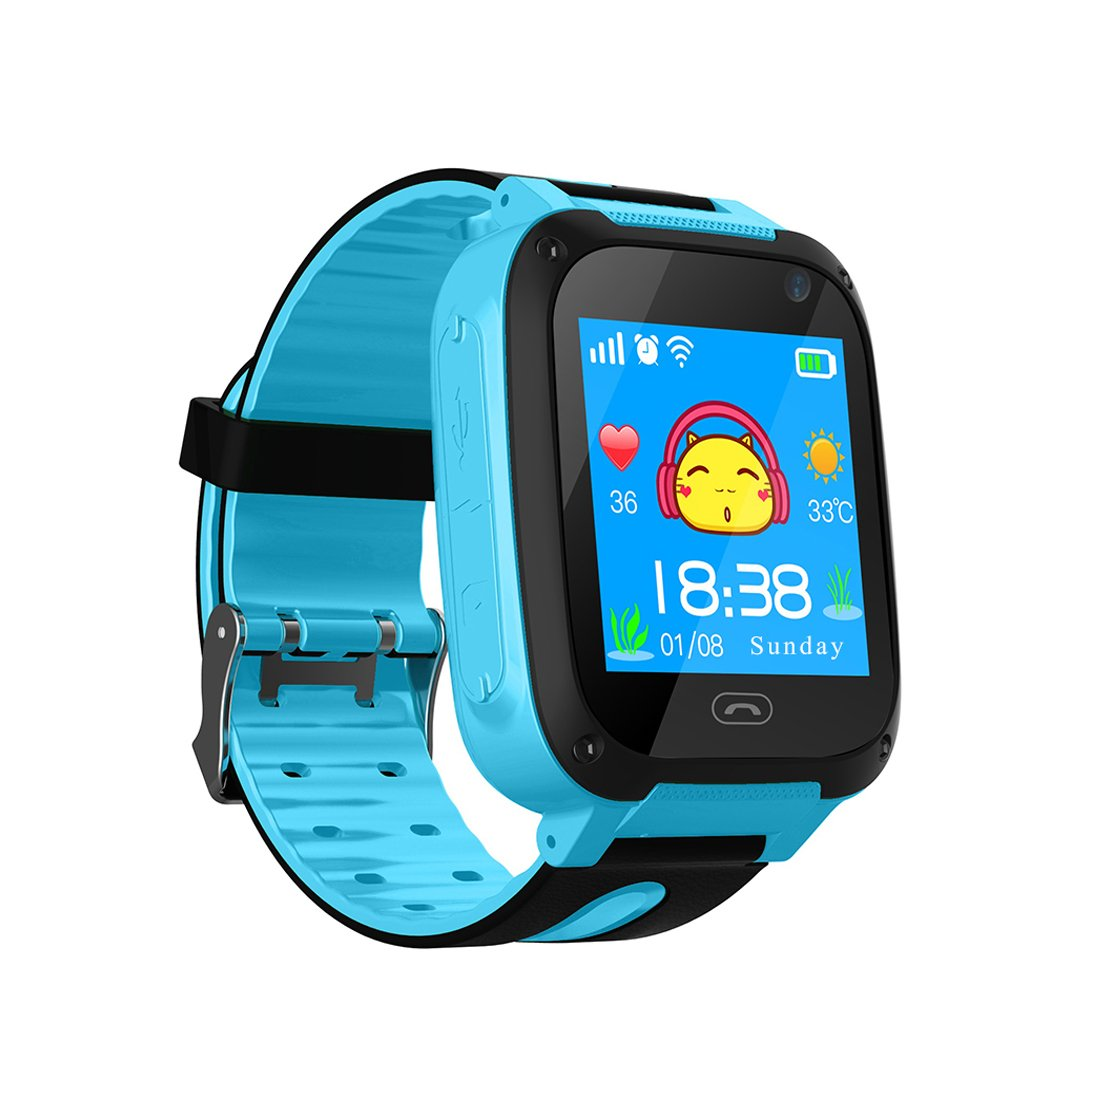 Kids Smart Watch Phone, Smartwatches for Children with GPS Tracker Anti-Lost SOS Call Boys and Girls Birthday Compatible Android iOS Touch Screen ...